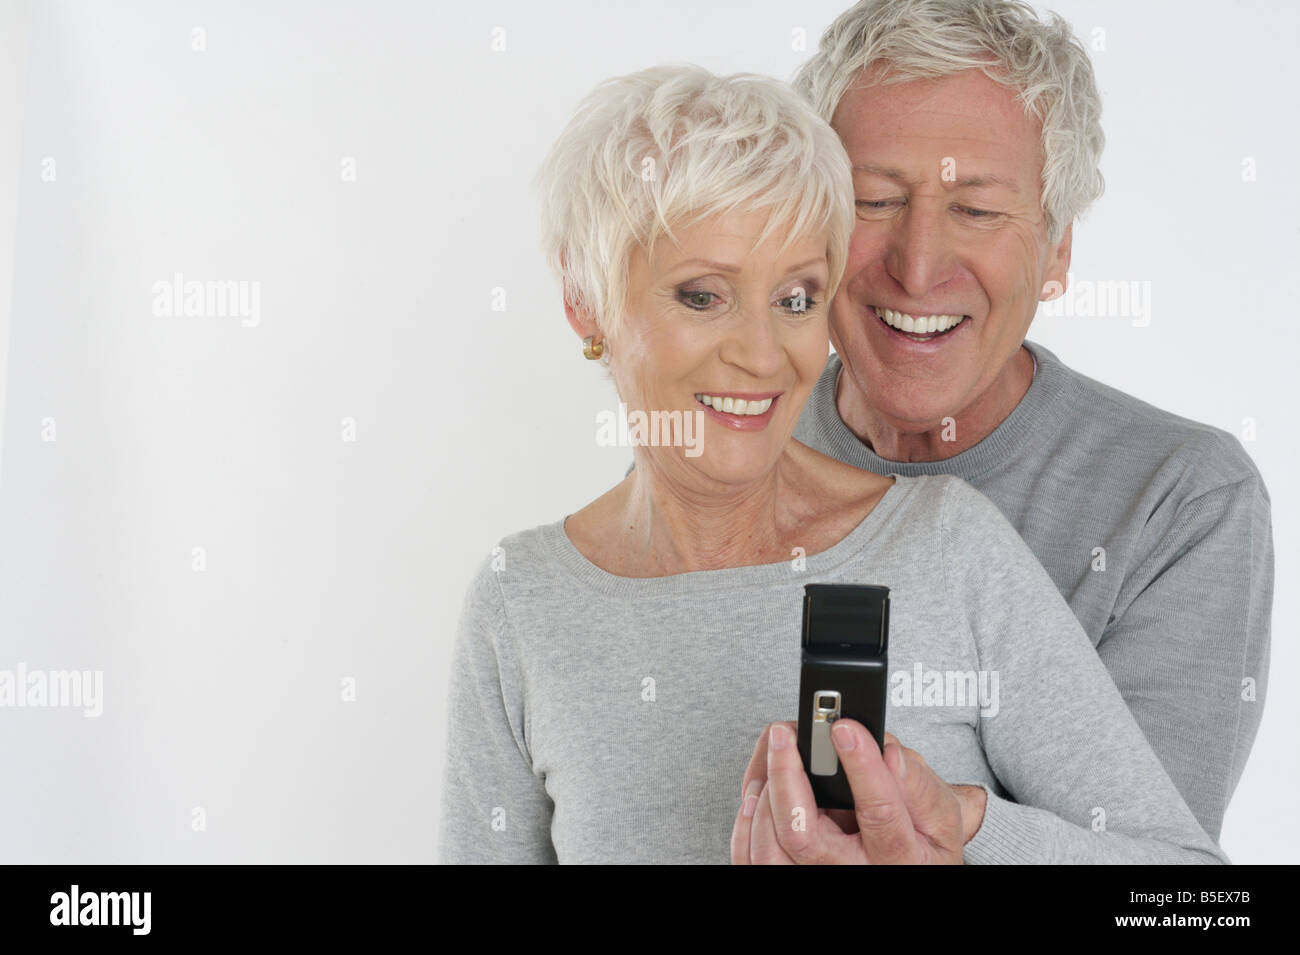 Old couple with a cellphone - Stock Image